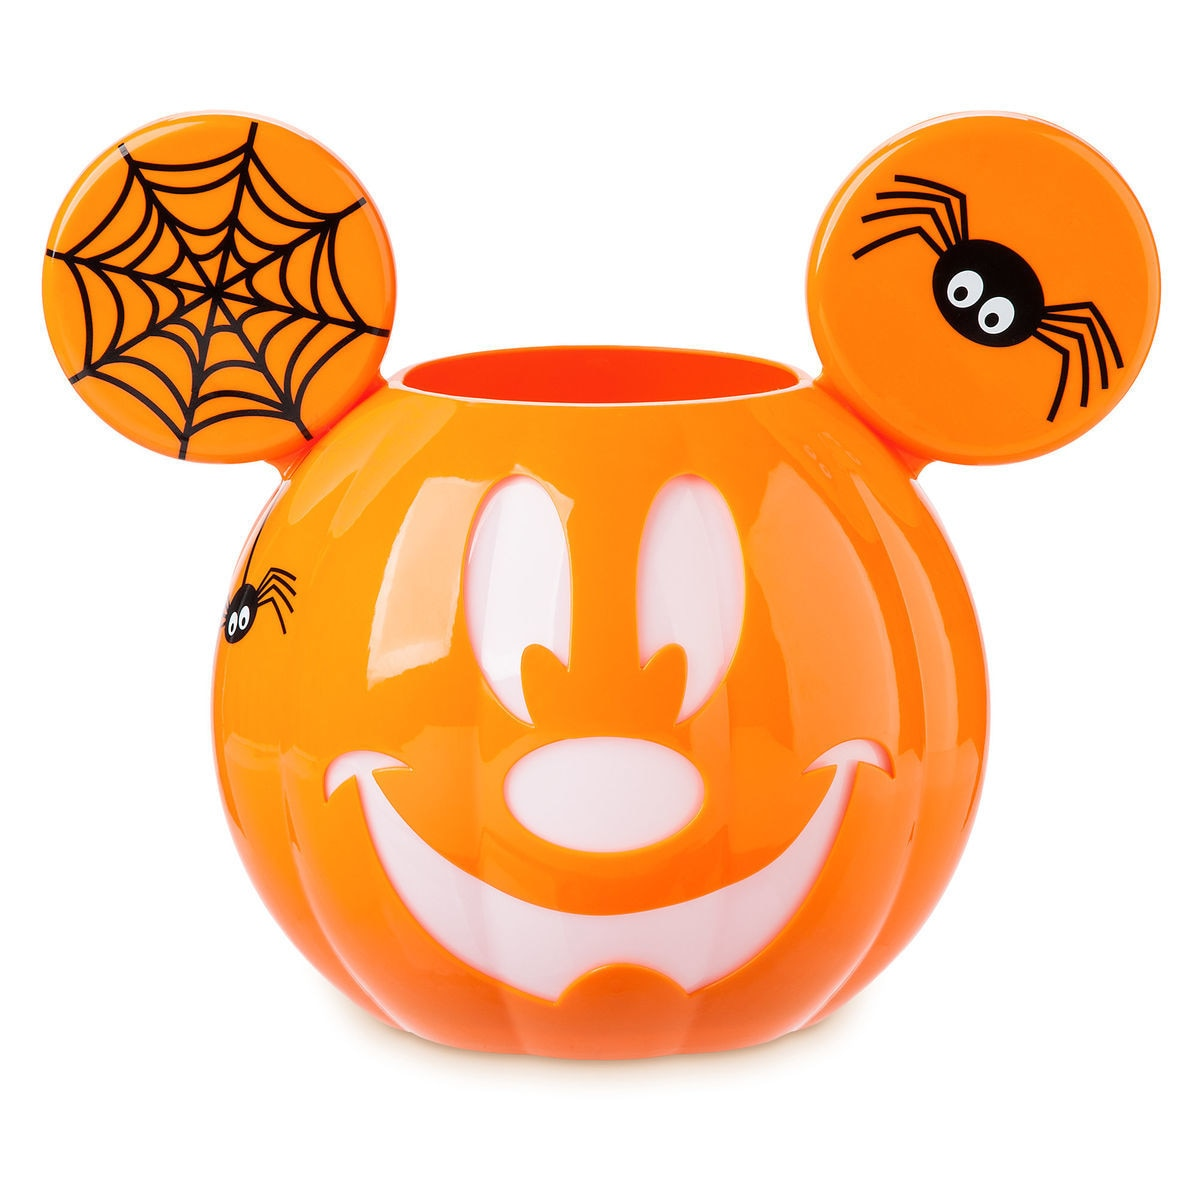 740ddc34af3 Product Image of Mickey Mouse Trick-or-Treat Candy Bowl   1